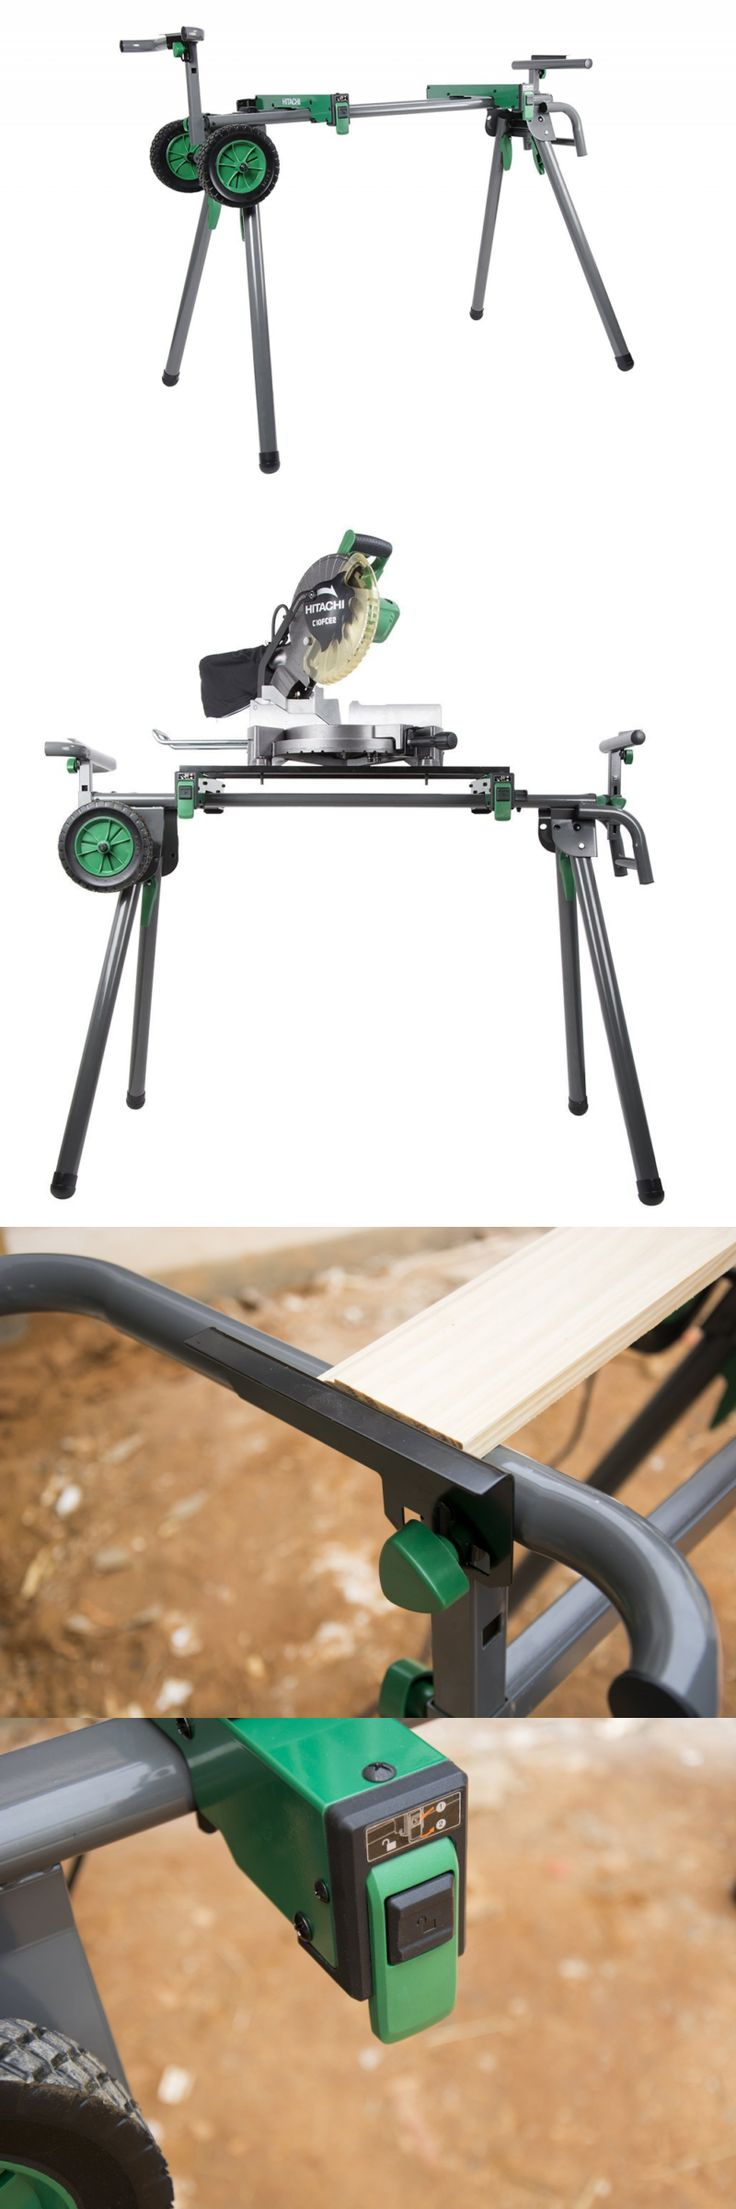 Miter and Chop Saws 20787: Hitachi Uu240f Heavy-Duty Portable Miter Saw Stand -> BUY IT NOW ONLY: $140.92 on eBay!